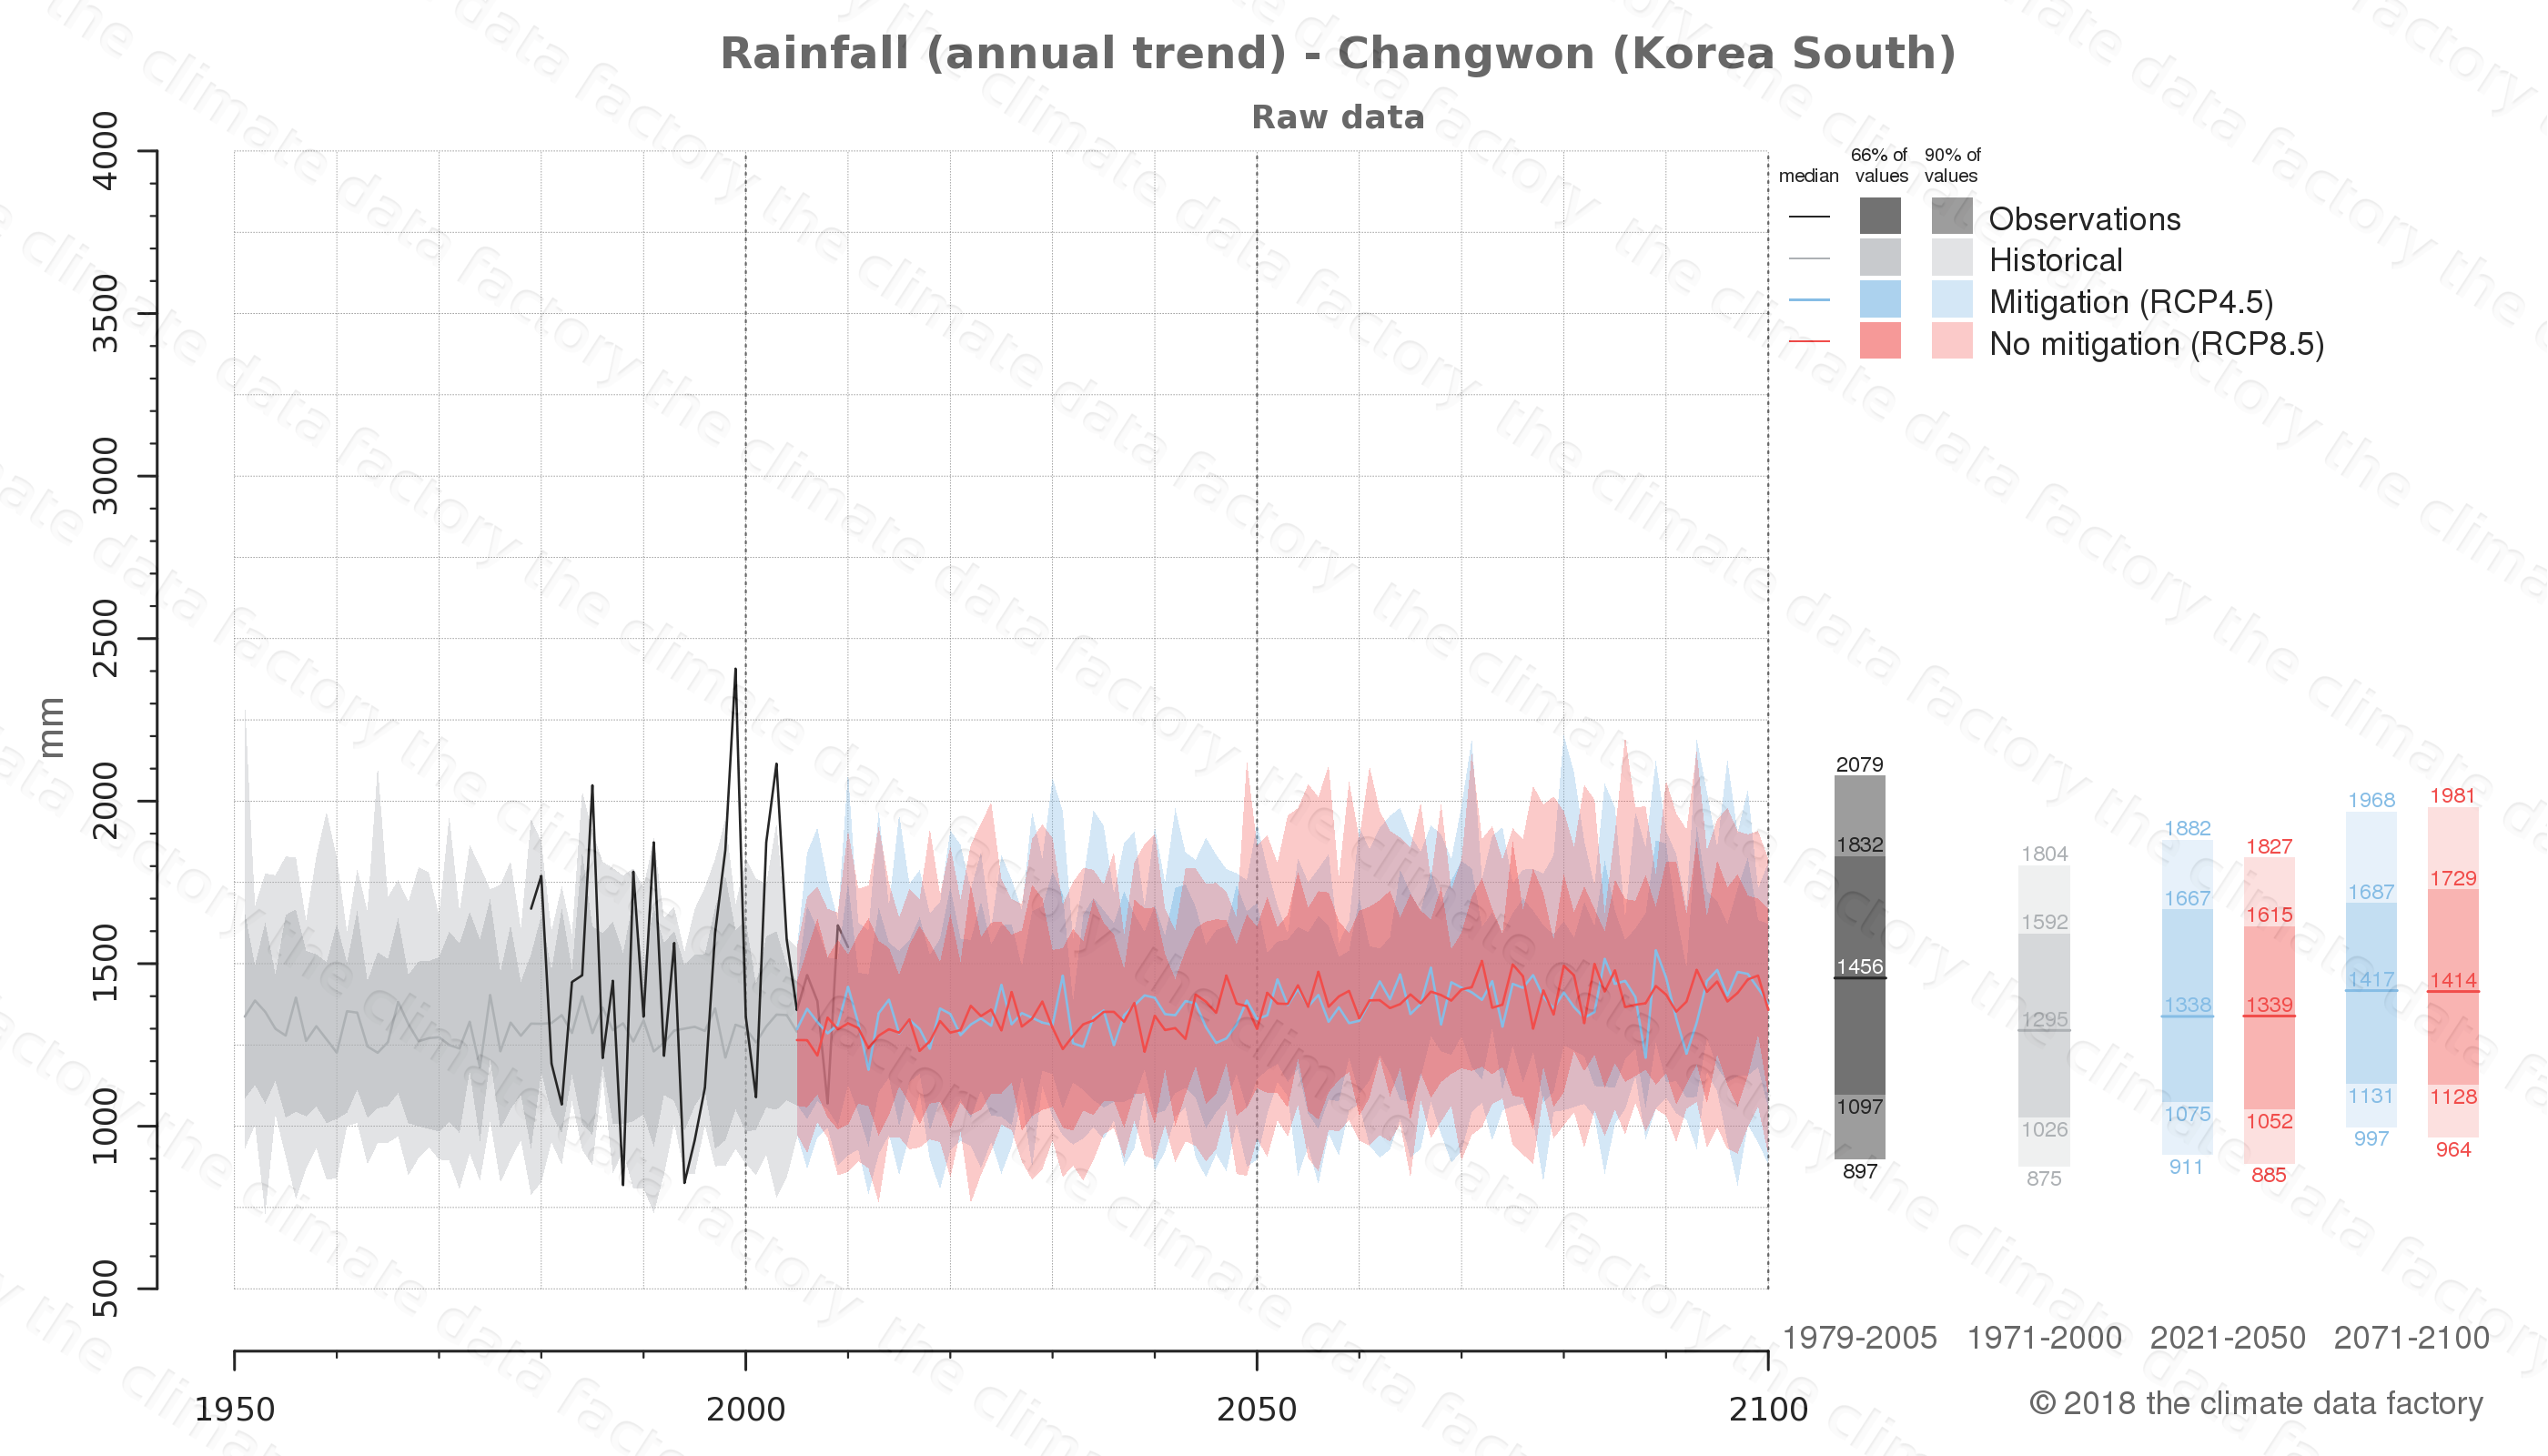 climate change data policy adaptation climate graph city data rainfall changwon south korea